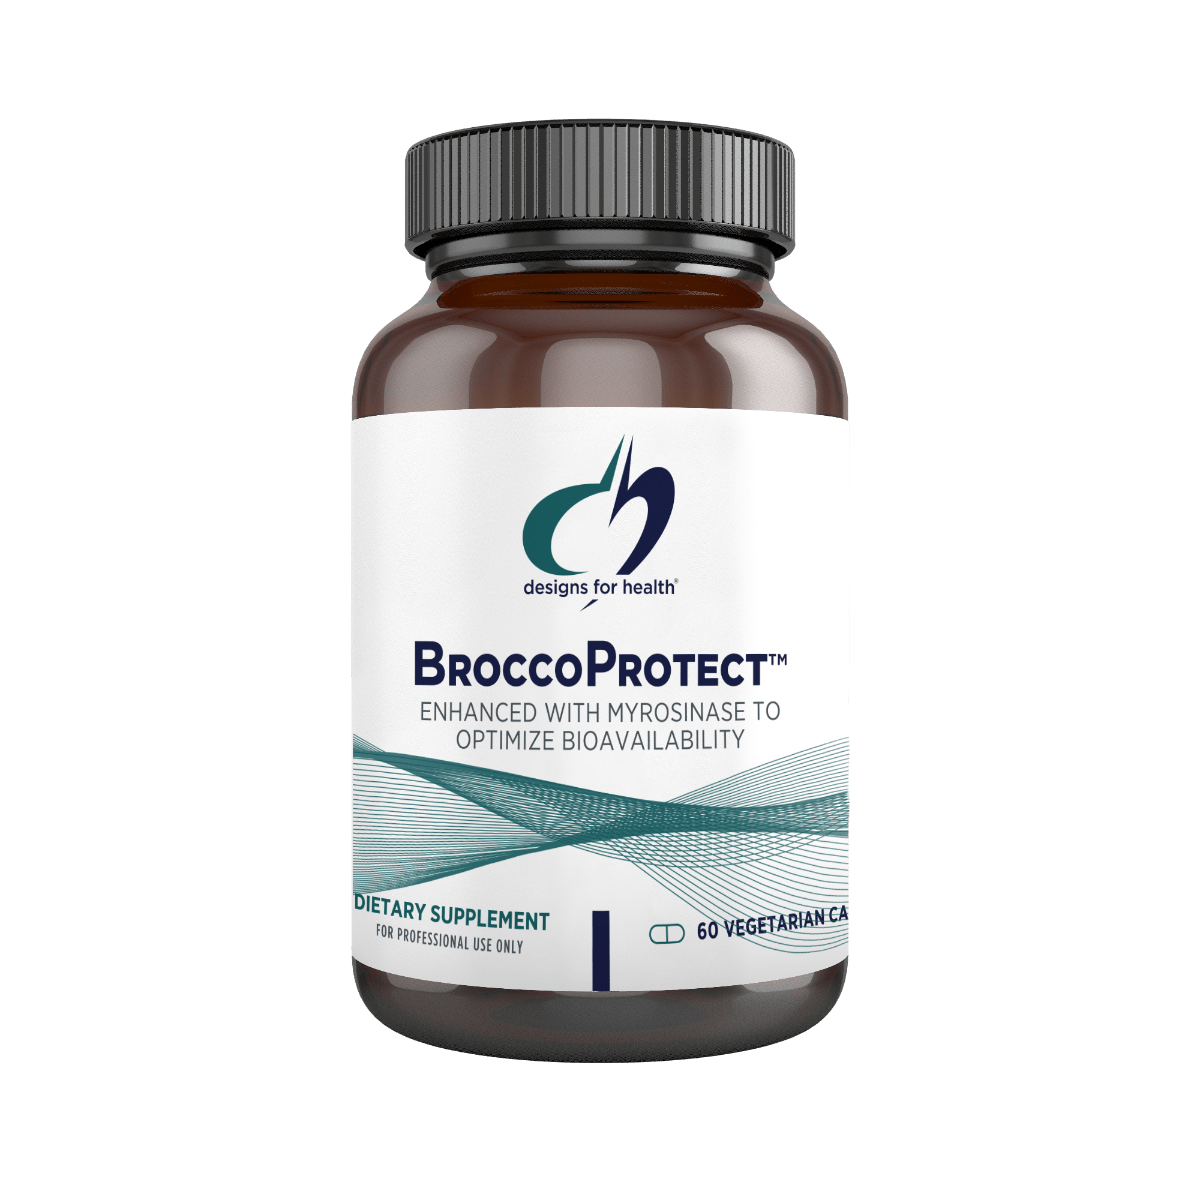 BroccoProtect 60 Designs for Health